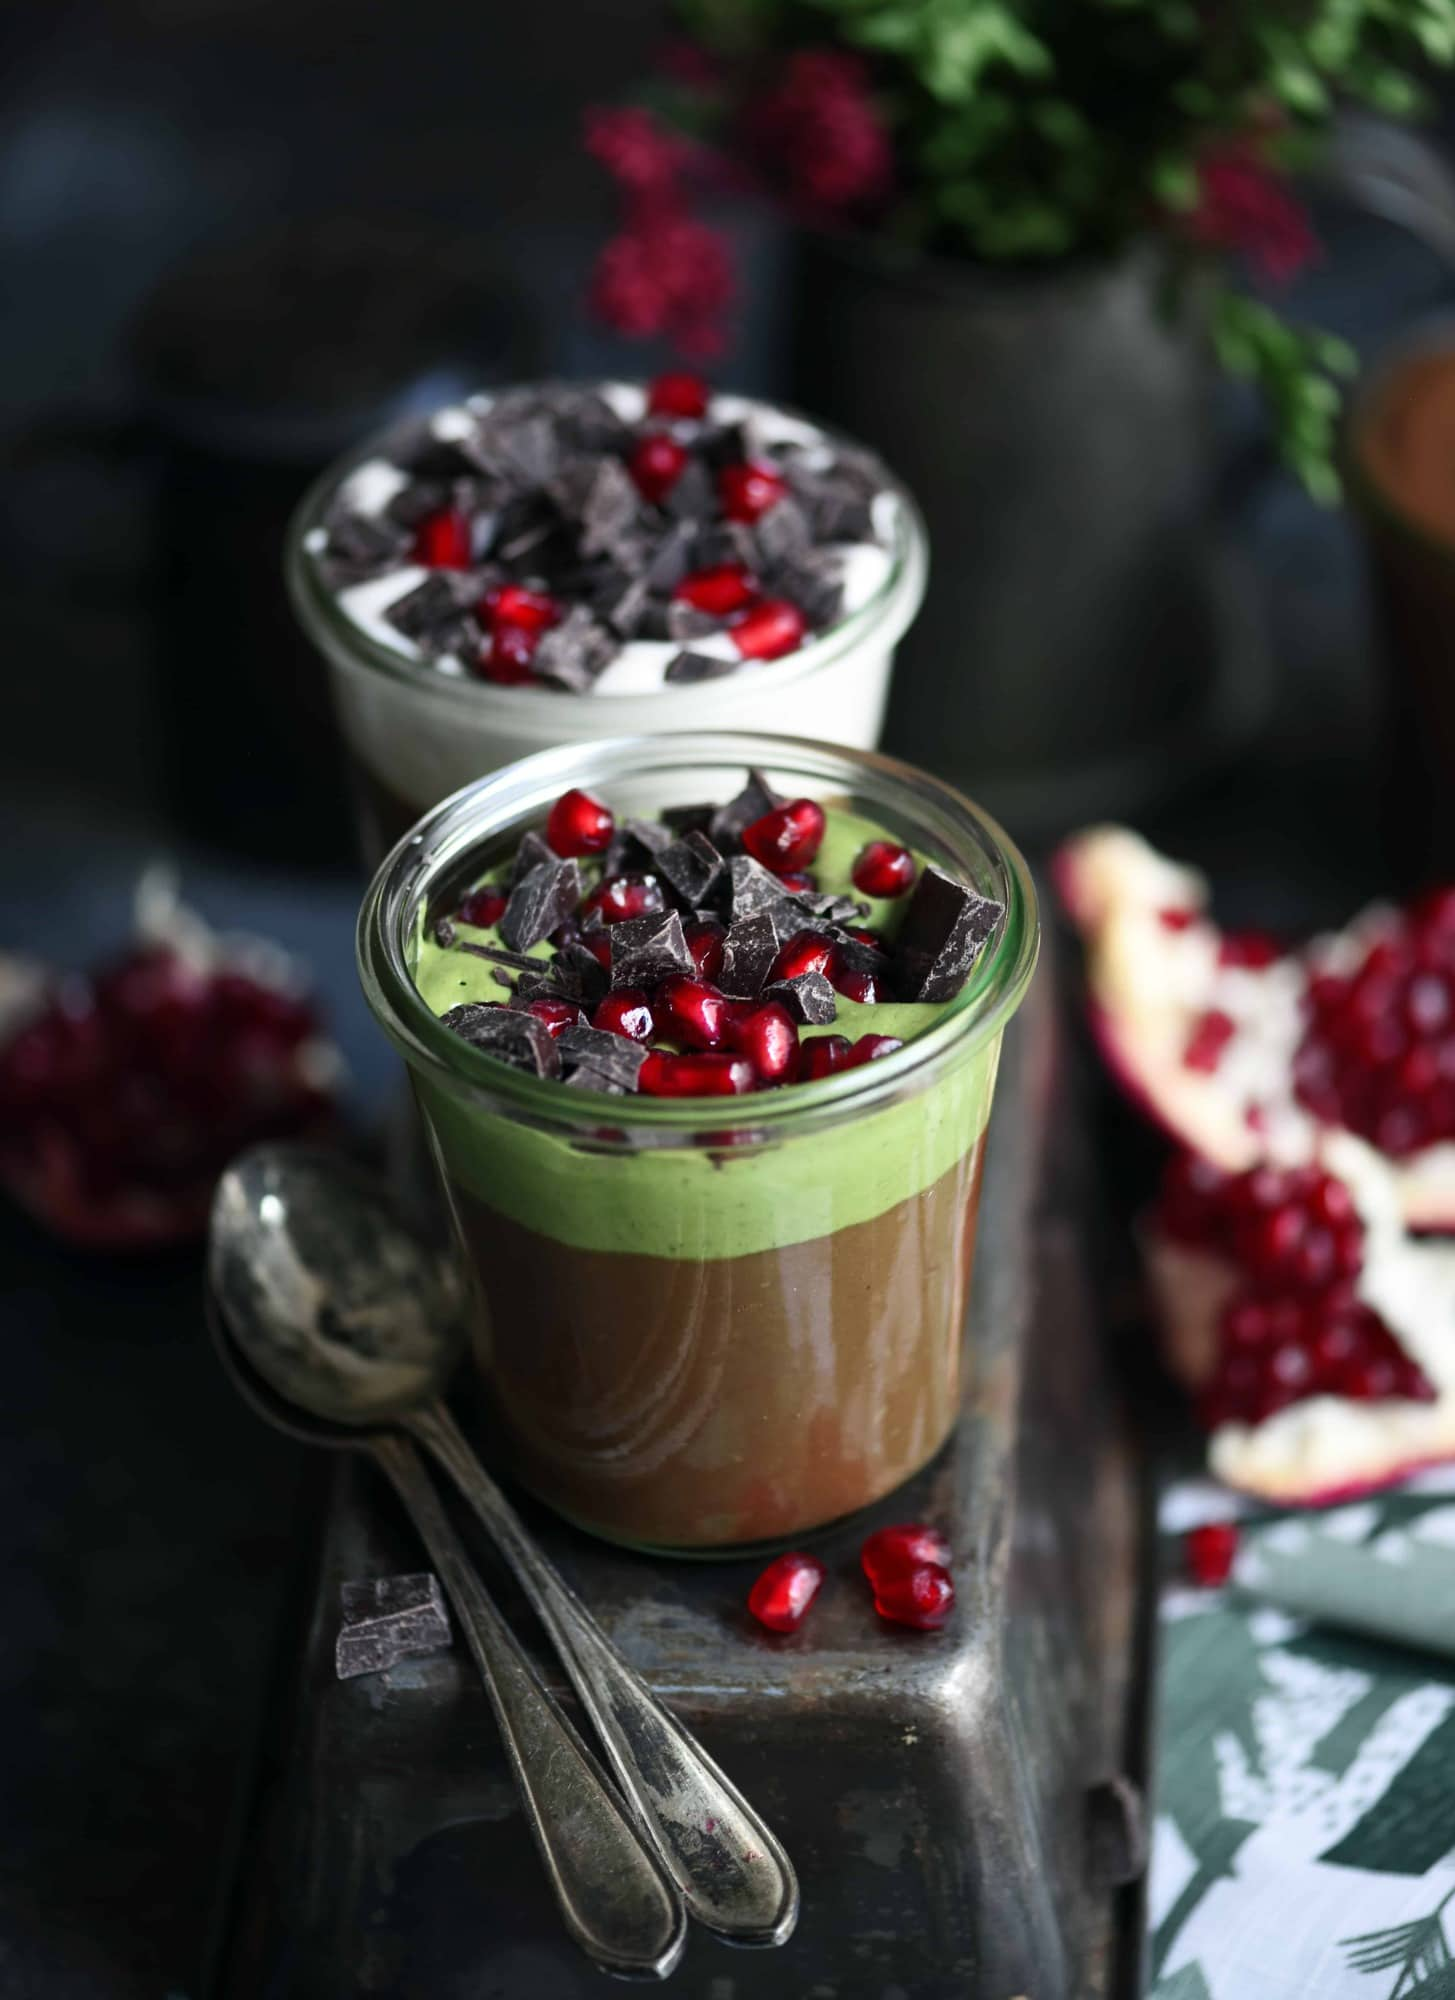 Jars filled with vegan chocolate and matcha mousse topped with chocolate and pomegranate on a dark background